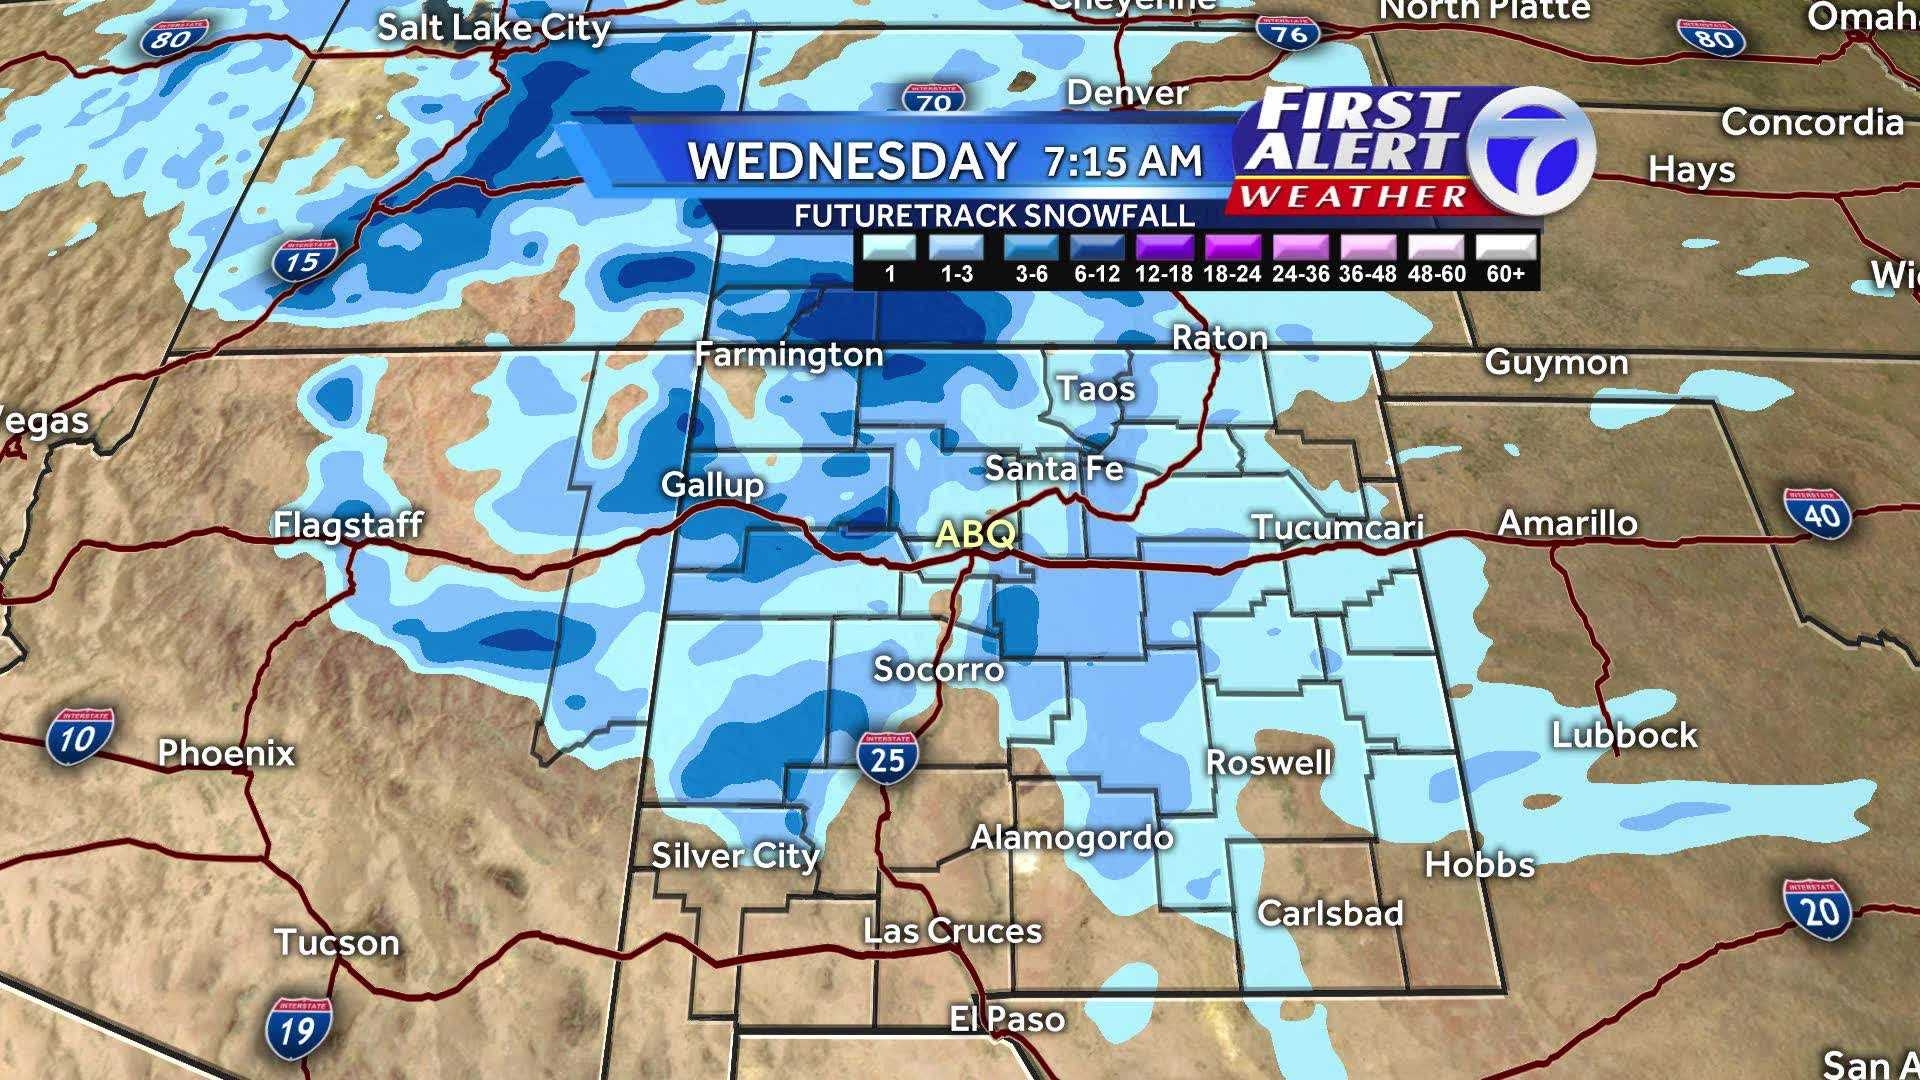 Two winter storms will hit New Mexico over the first few days of the week, and some areas of New Mexico could get a significant amount of snow. Here's how much snow we're forecasting